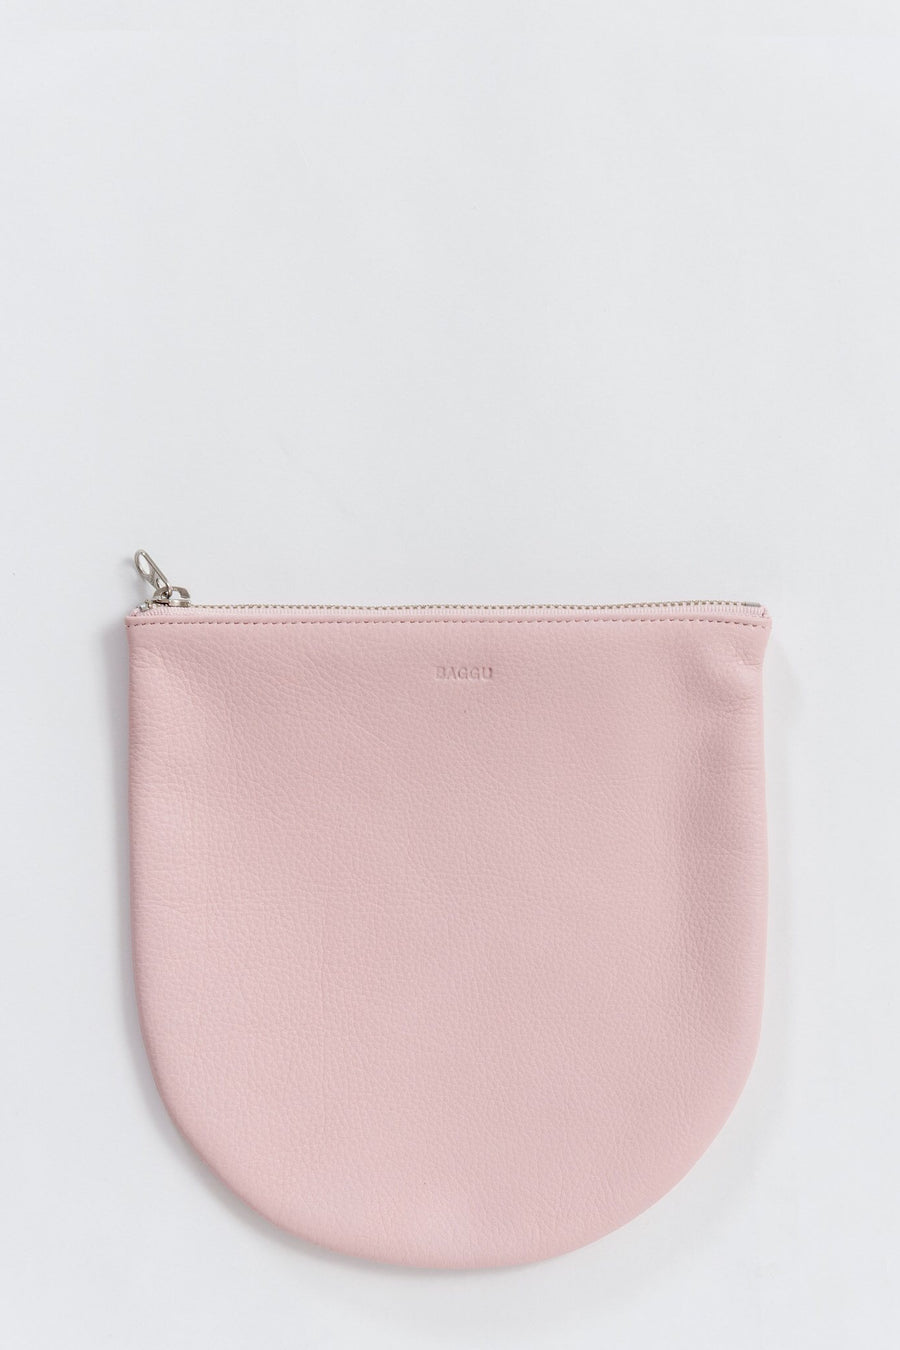 Baggu Large U Pouch Powder Pink | Collective Request